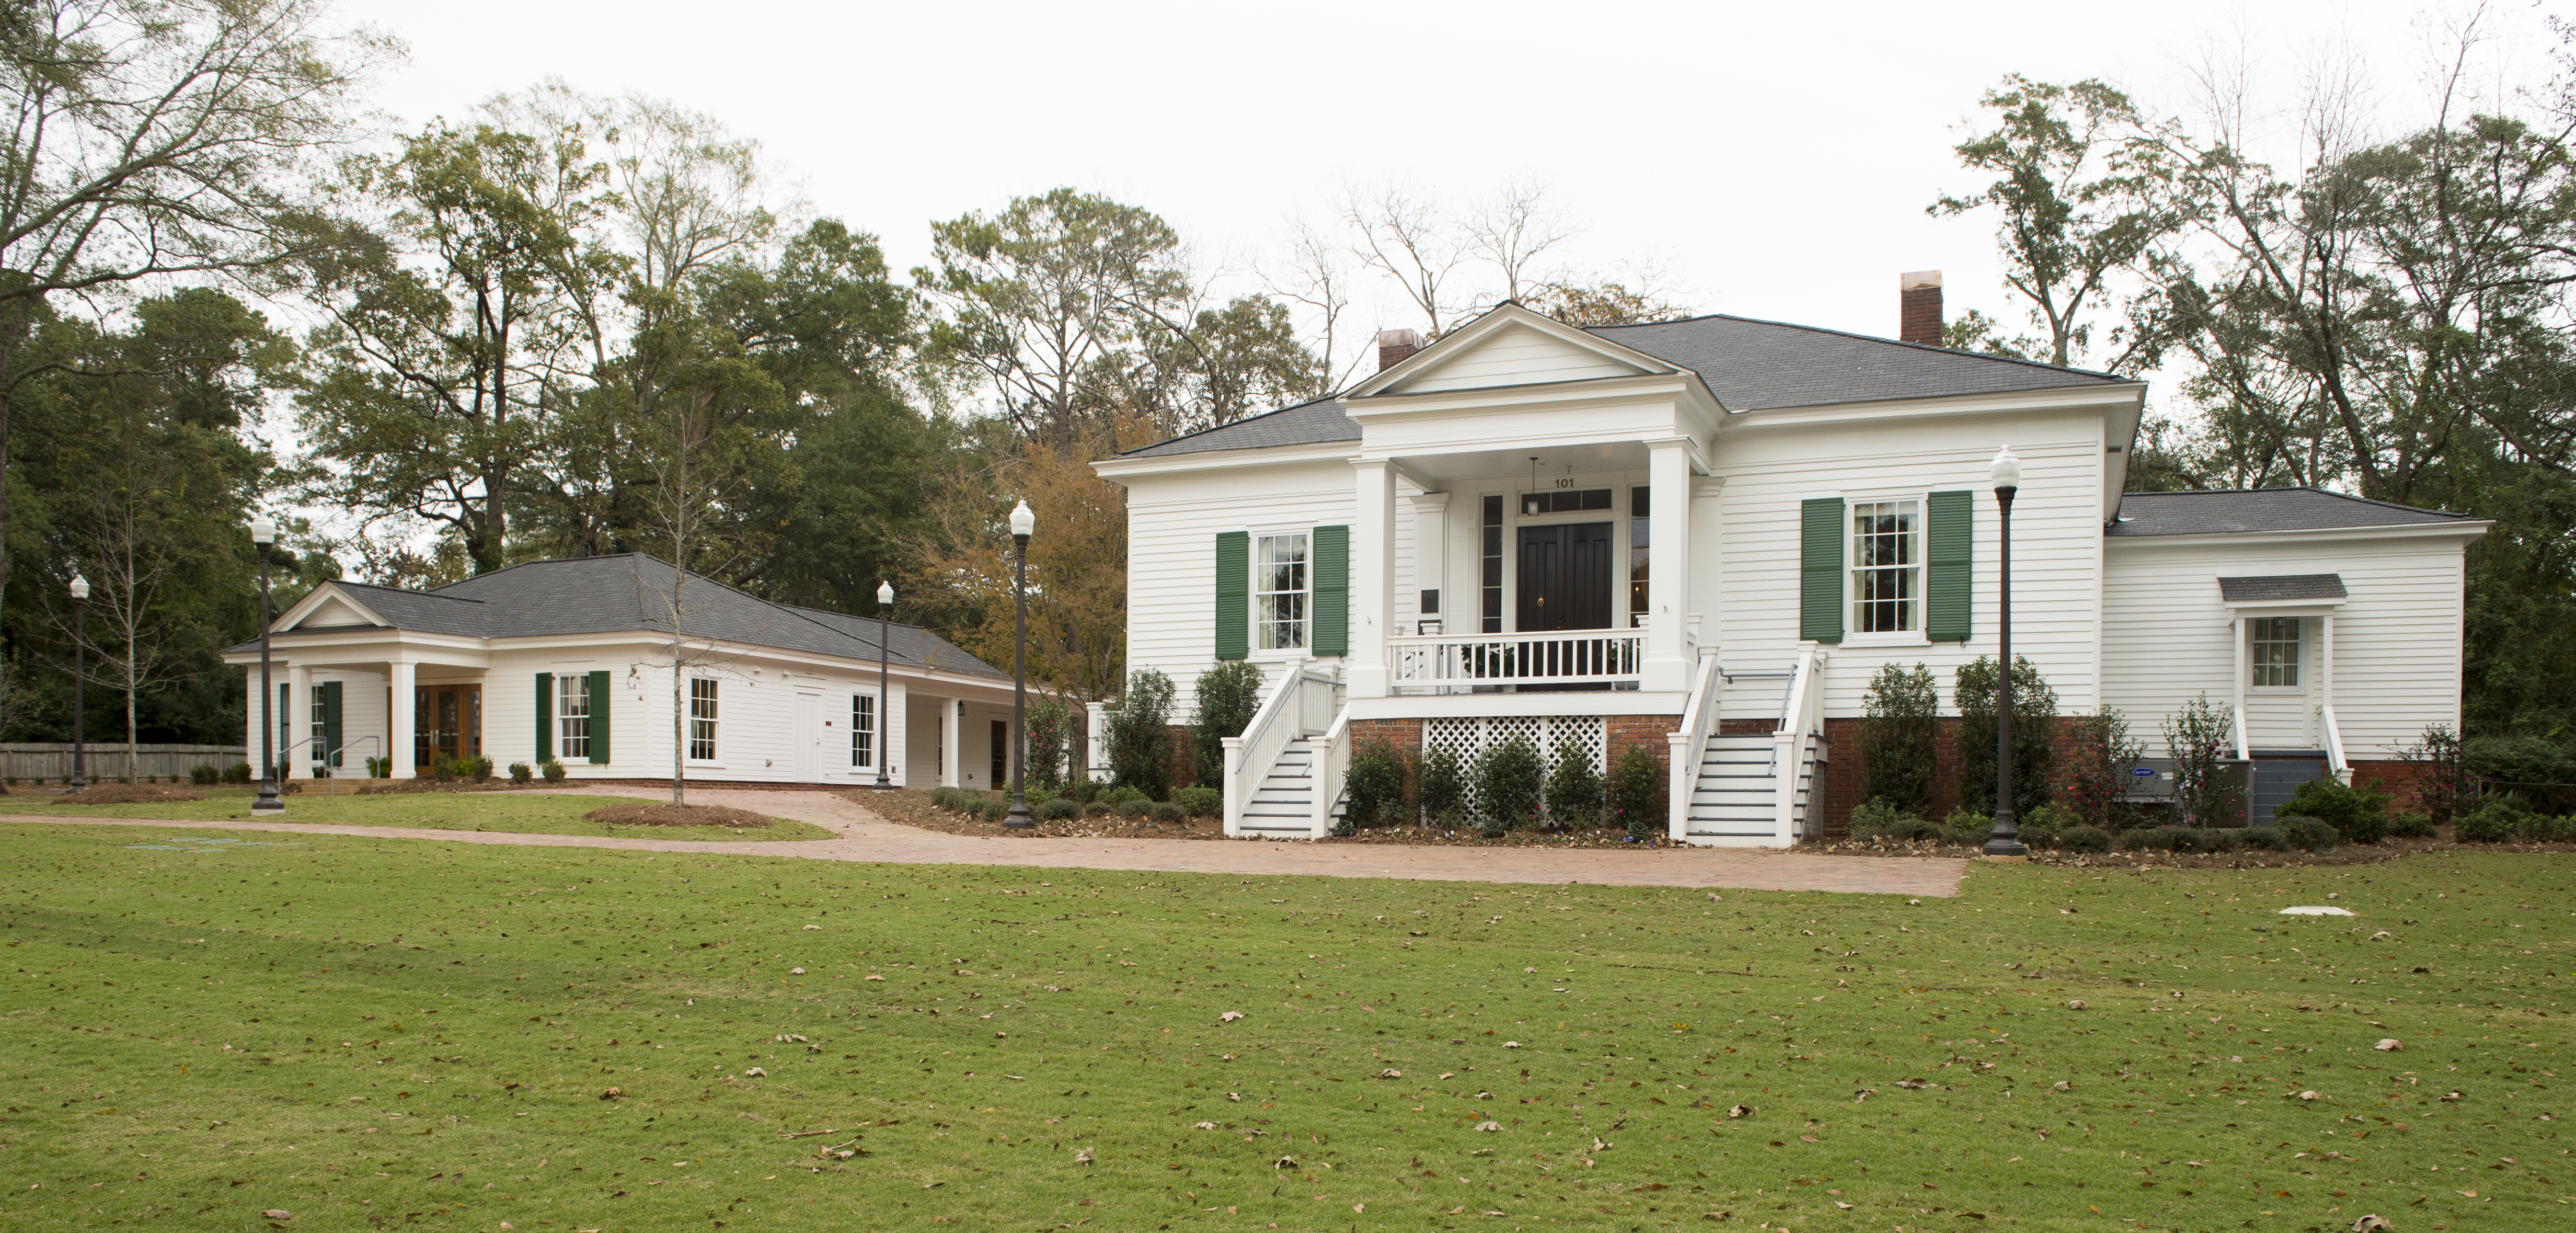 Designed in the Greek Revival style, Pebble Hill was built in 1847.